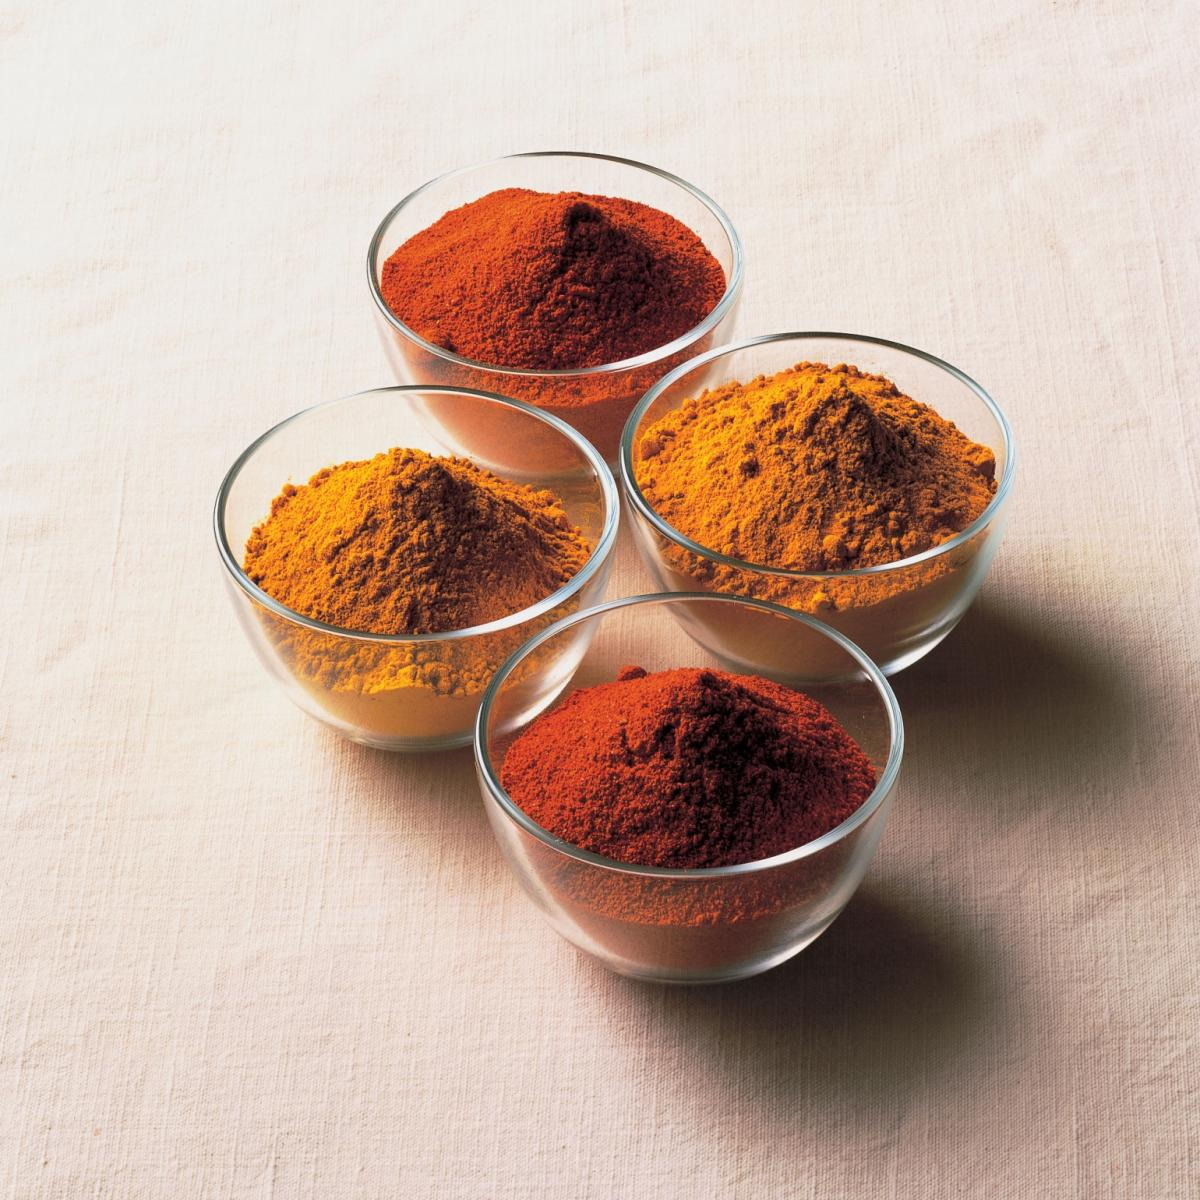 Ingredient chicken spices turmeric curry powder